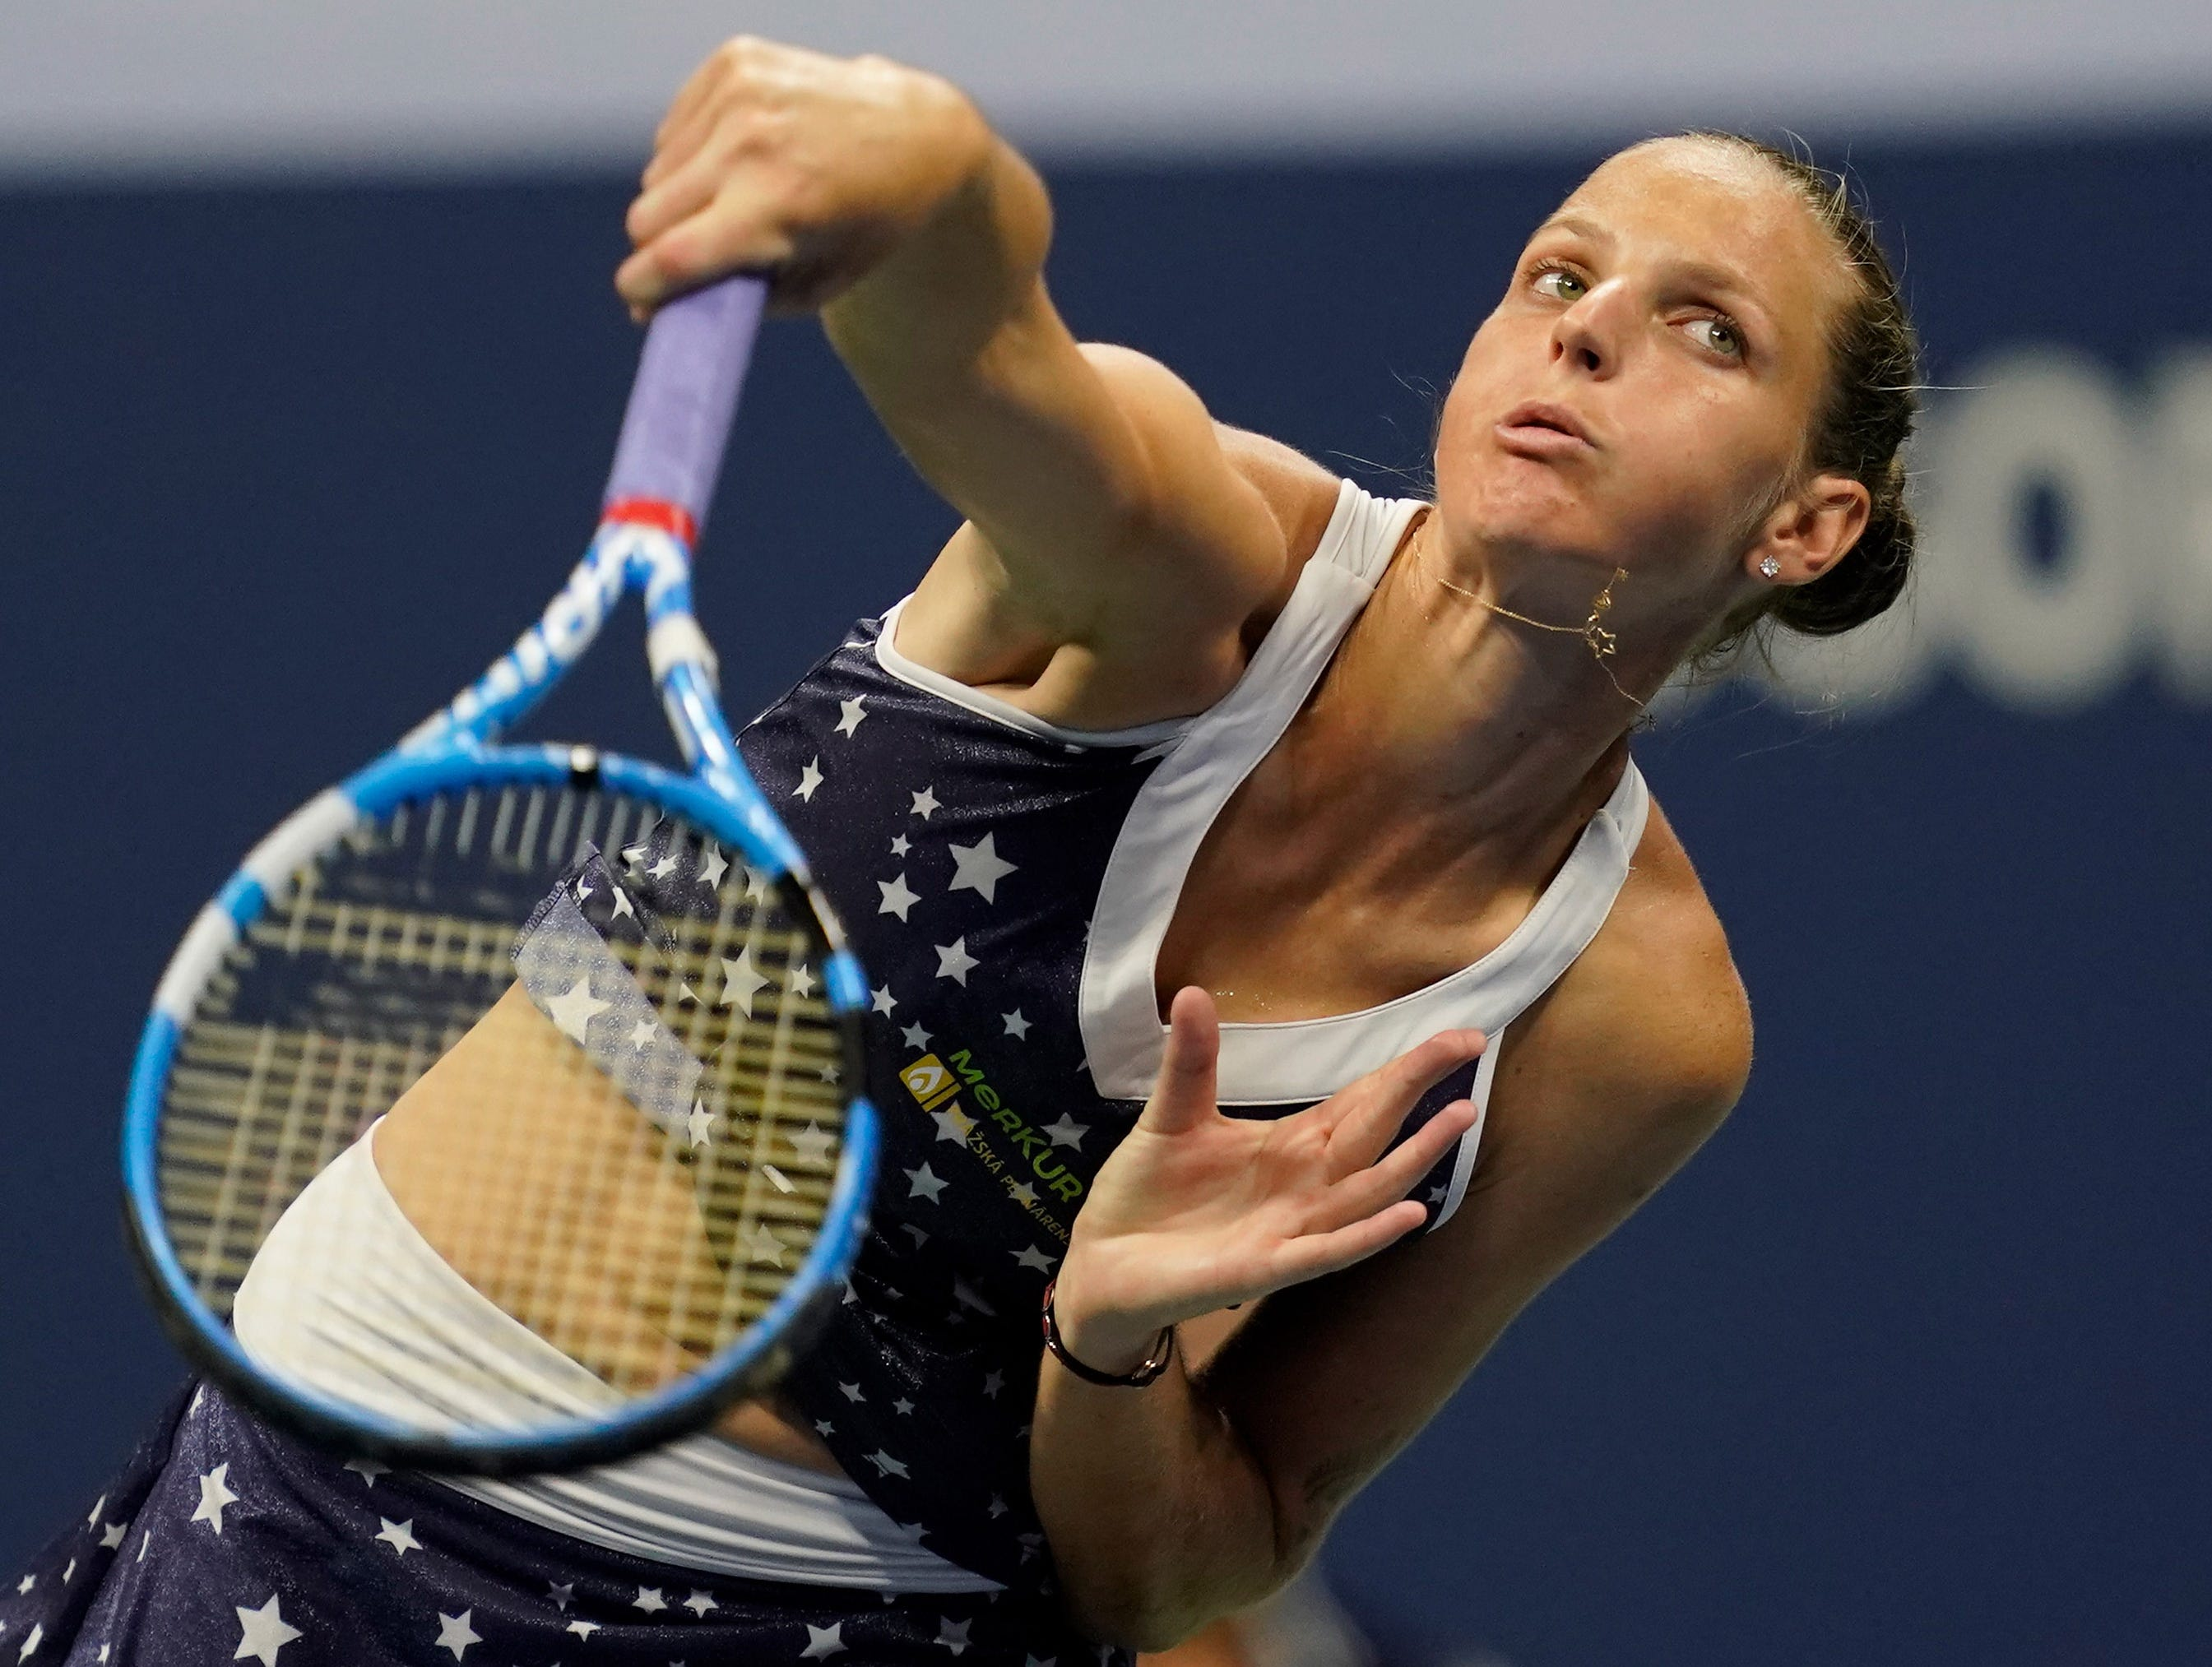 Karolina Pliskova led early against Serena Williams but lost eight games in a row.